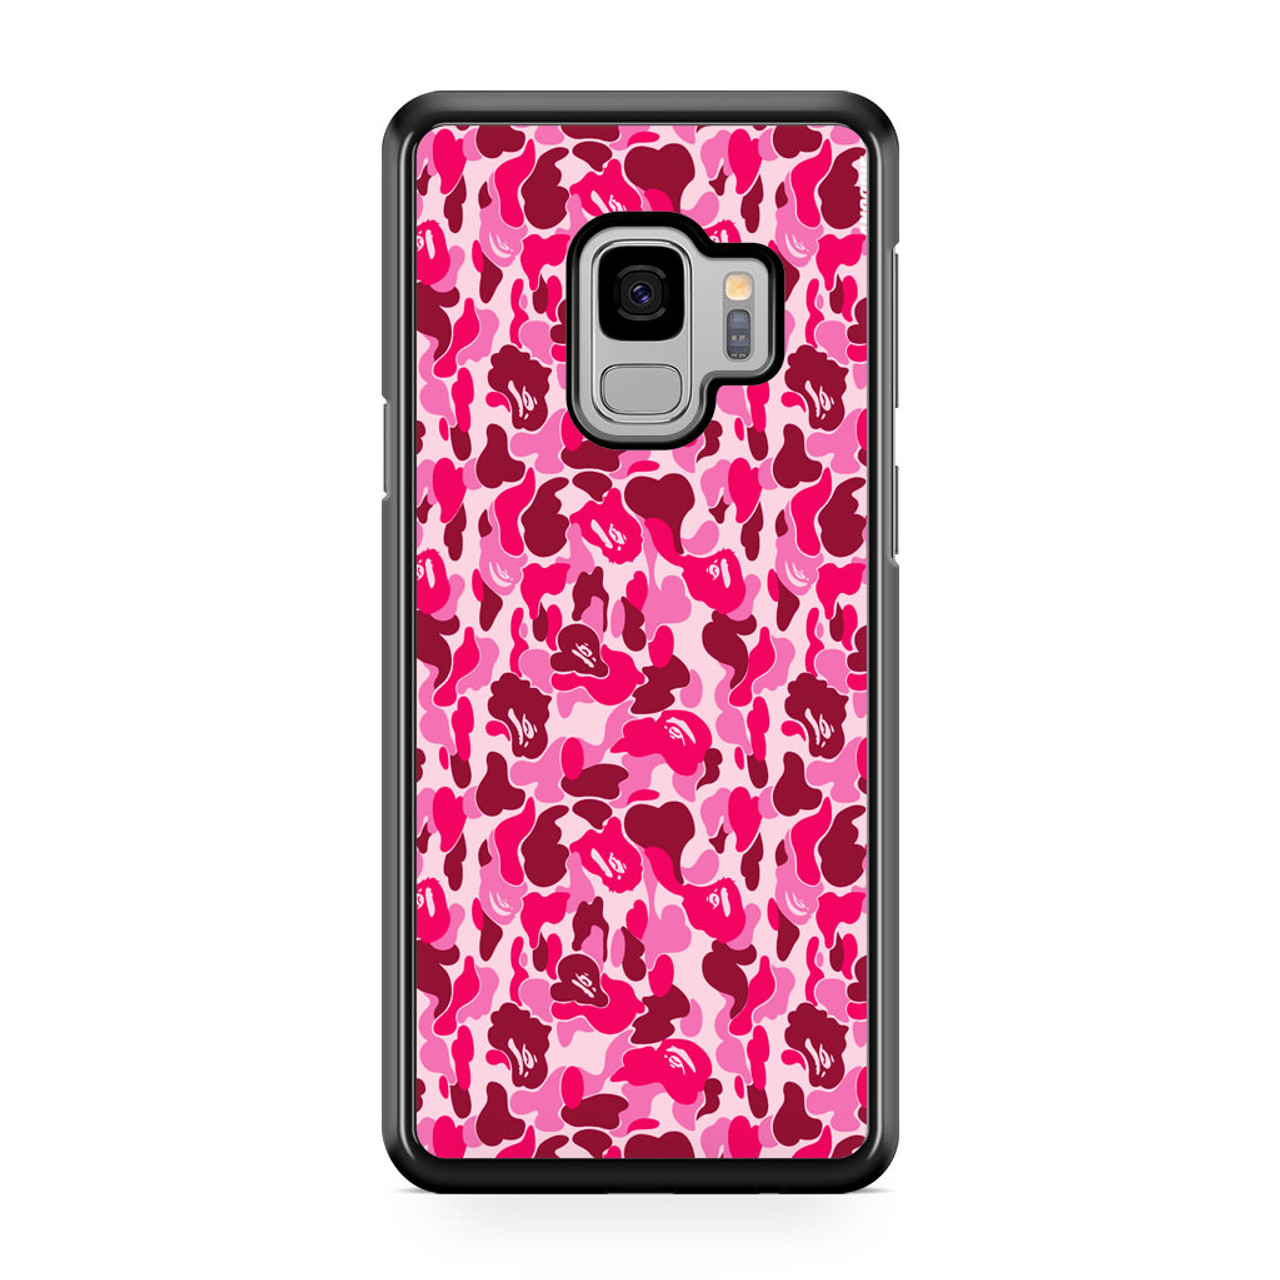 new products a1a72 53441 Bathing Ape Bape Pink Samsung Galaxy S9 Case